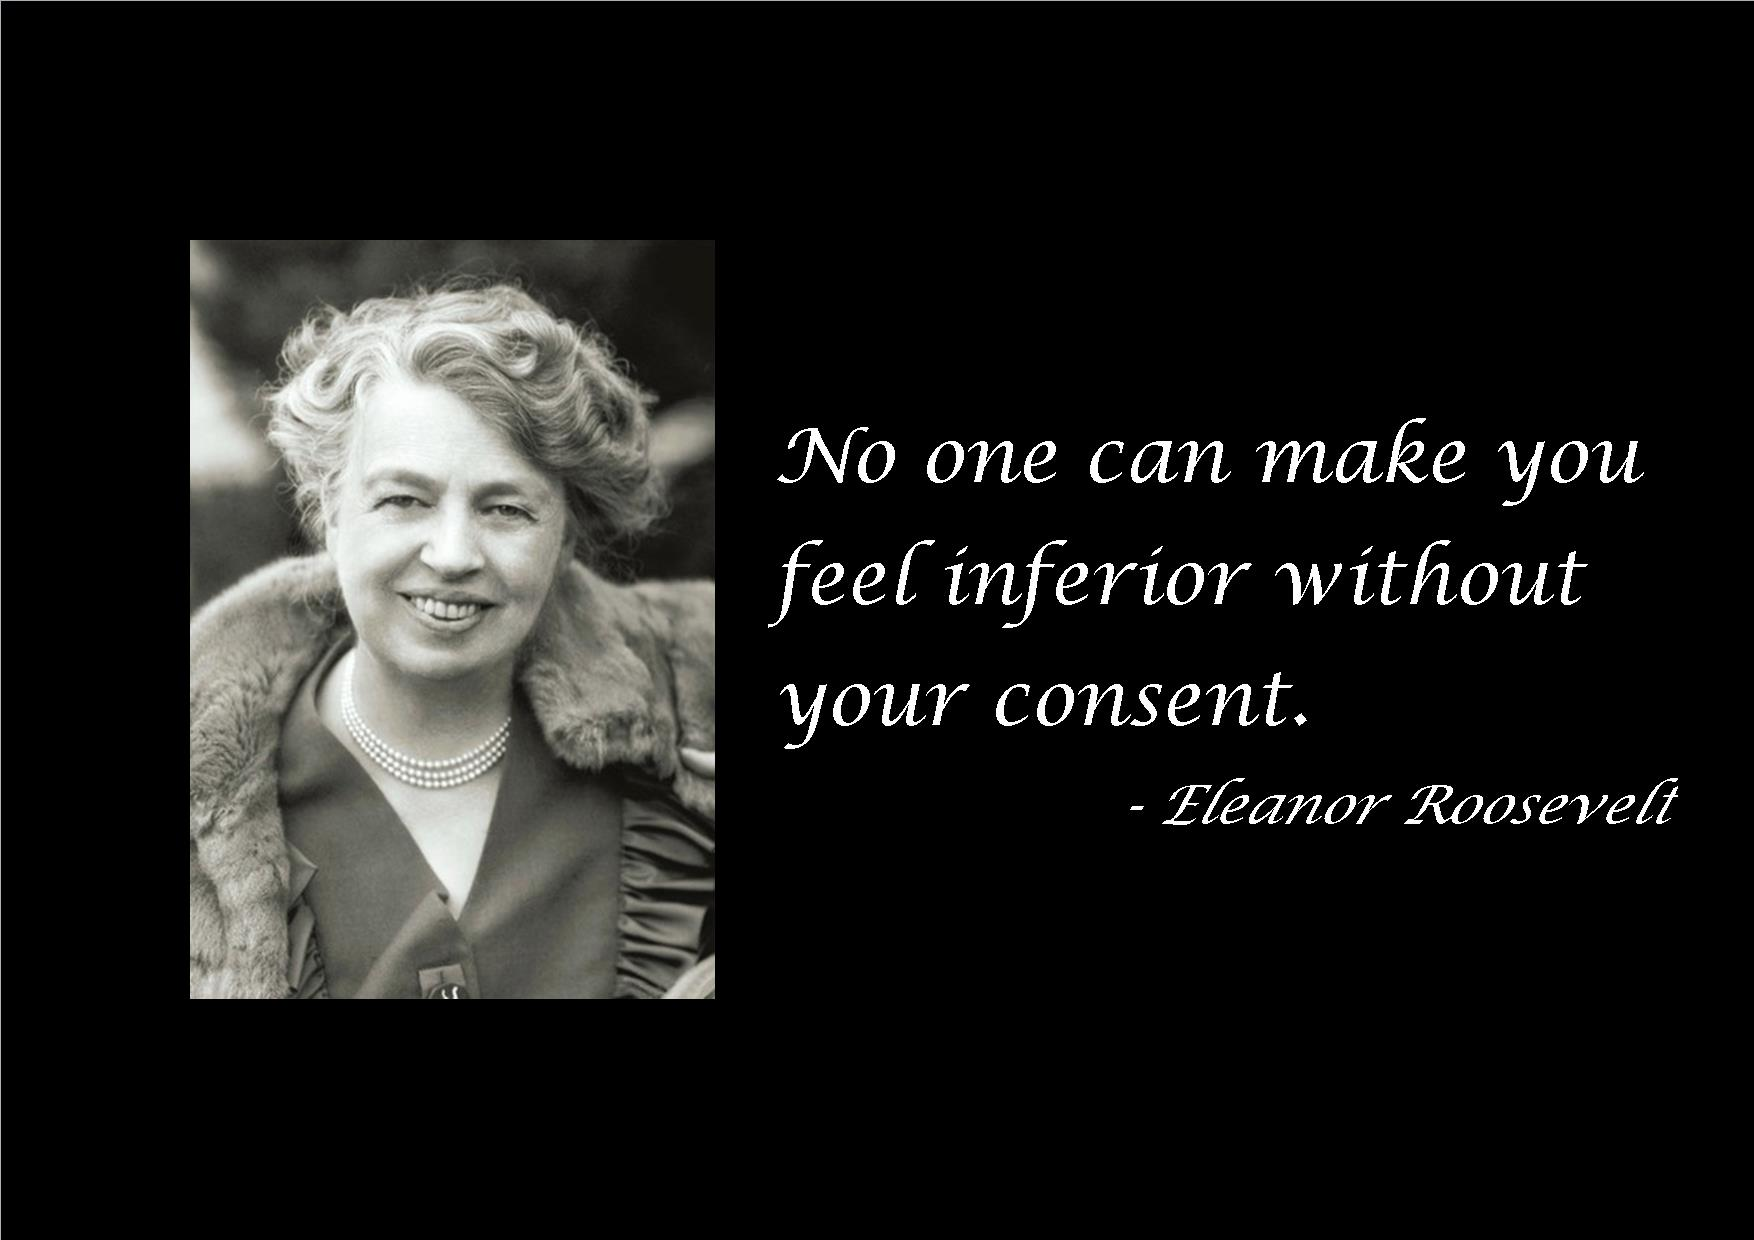 Pax on both houses: Eleanor Roosevelt